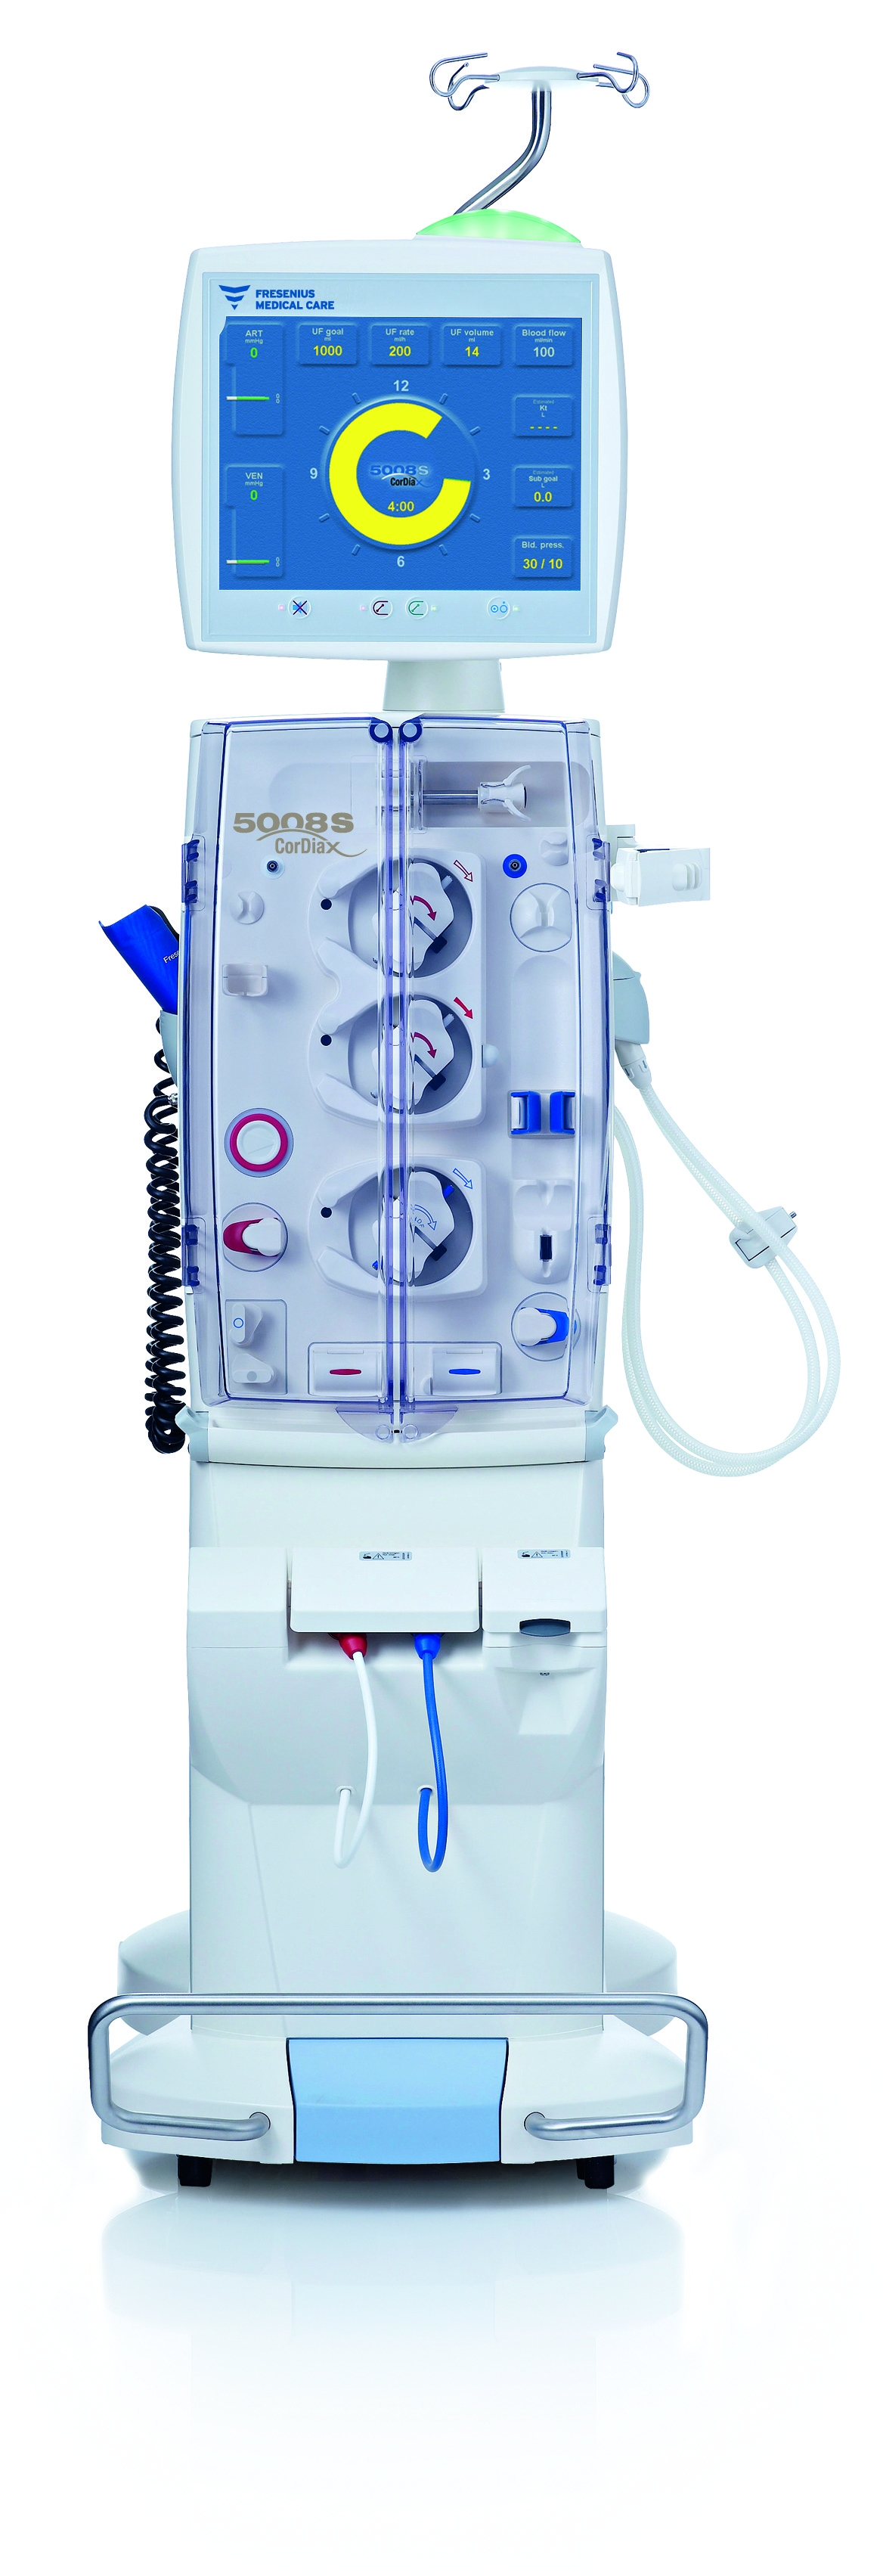 5008S-CorDiax-machine--fresenius-medical-care.jpg